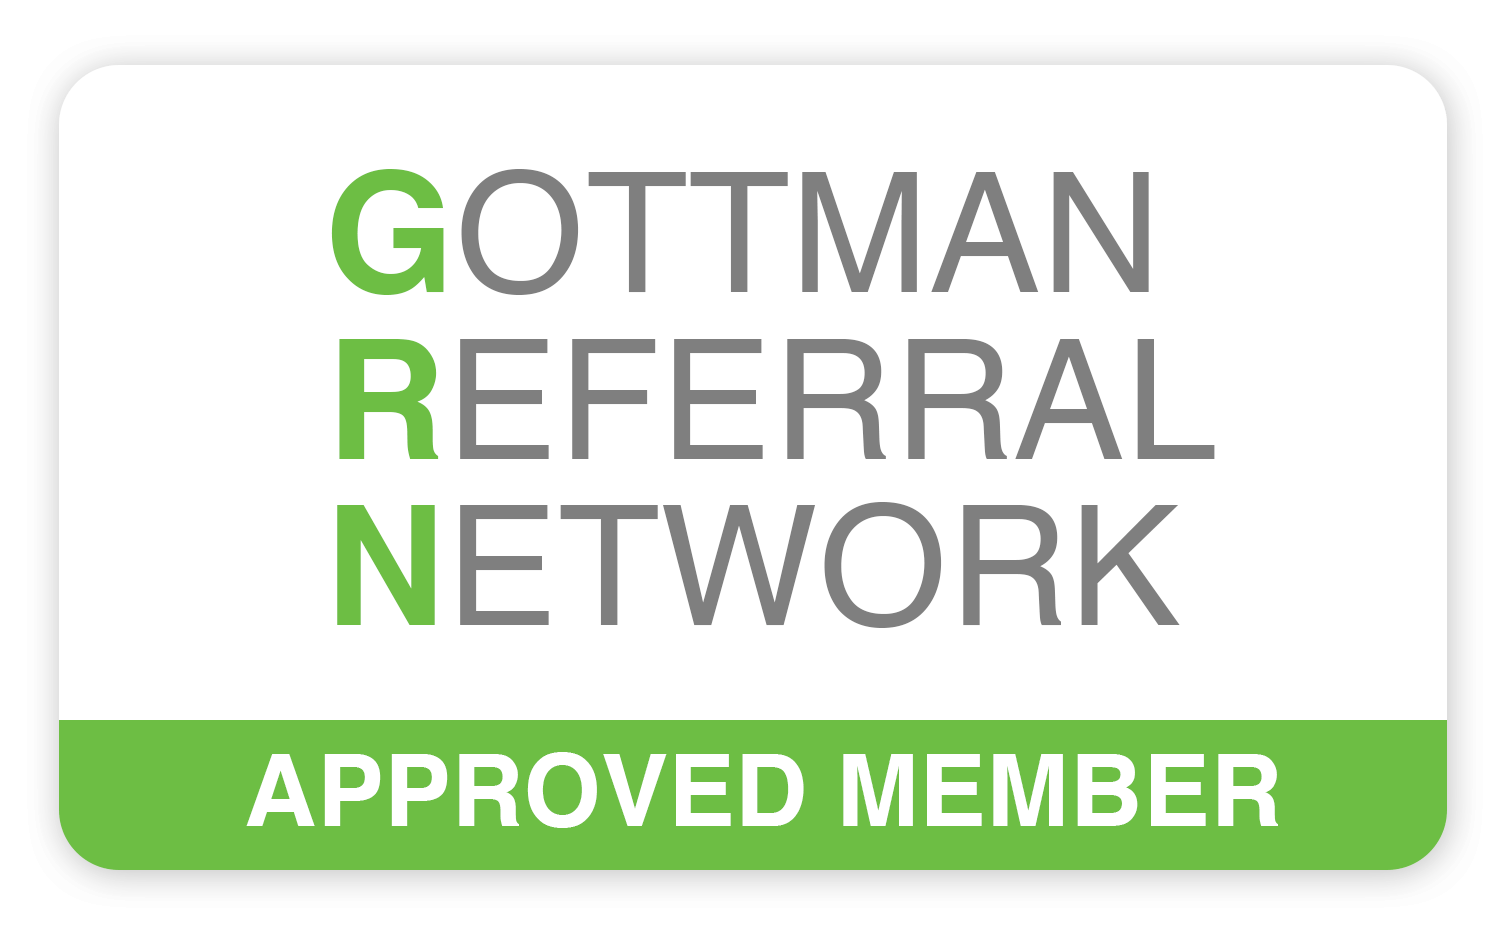 Tehilla Luttig's profile on the Gottman Referral Network